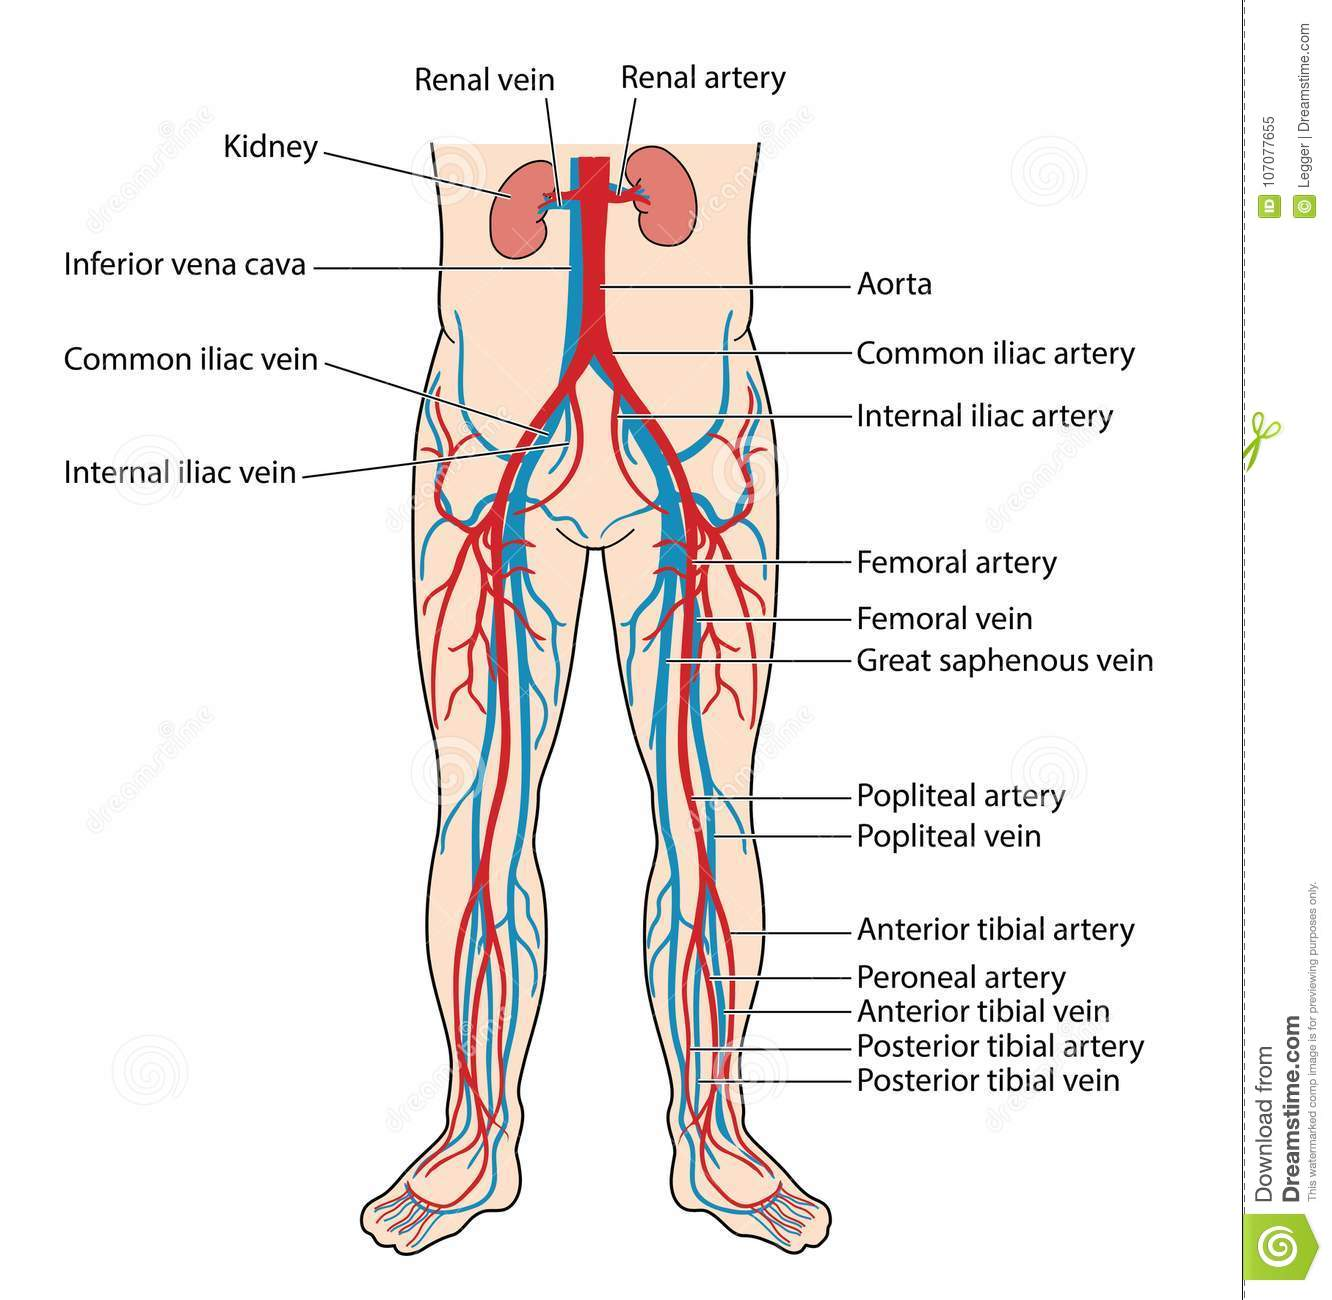 Blood Vessels Of The Lower Body Stock Vector - Illustration of vein ...